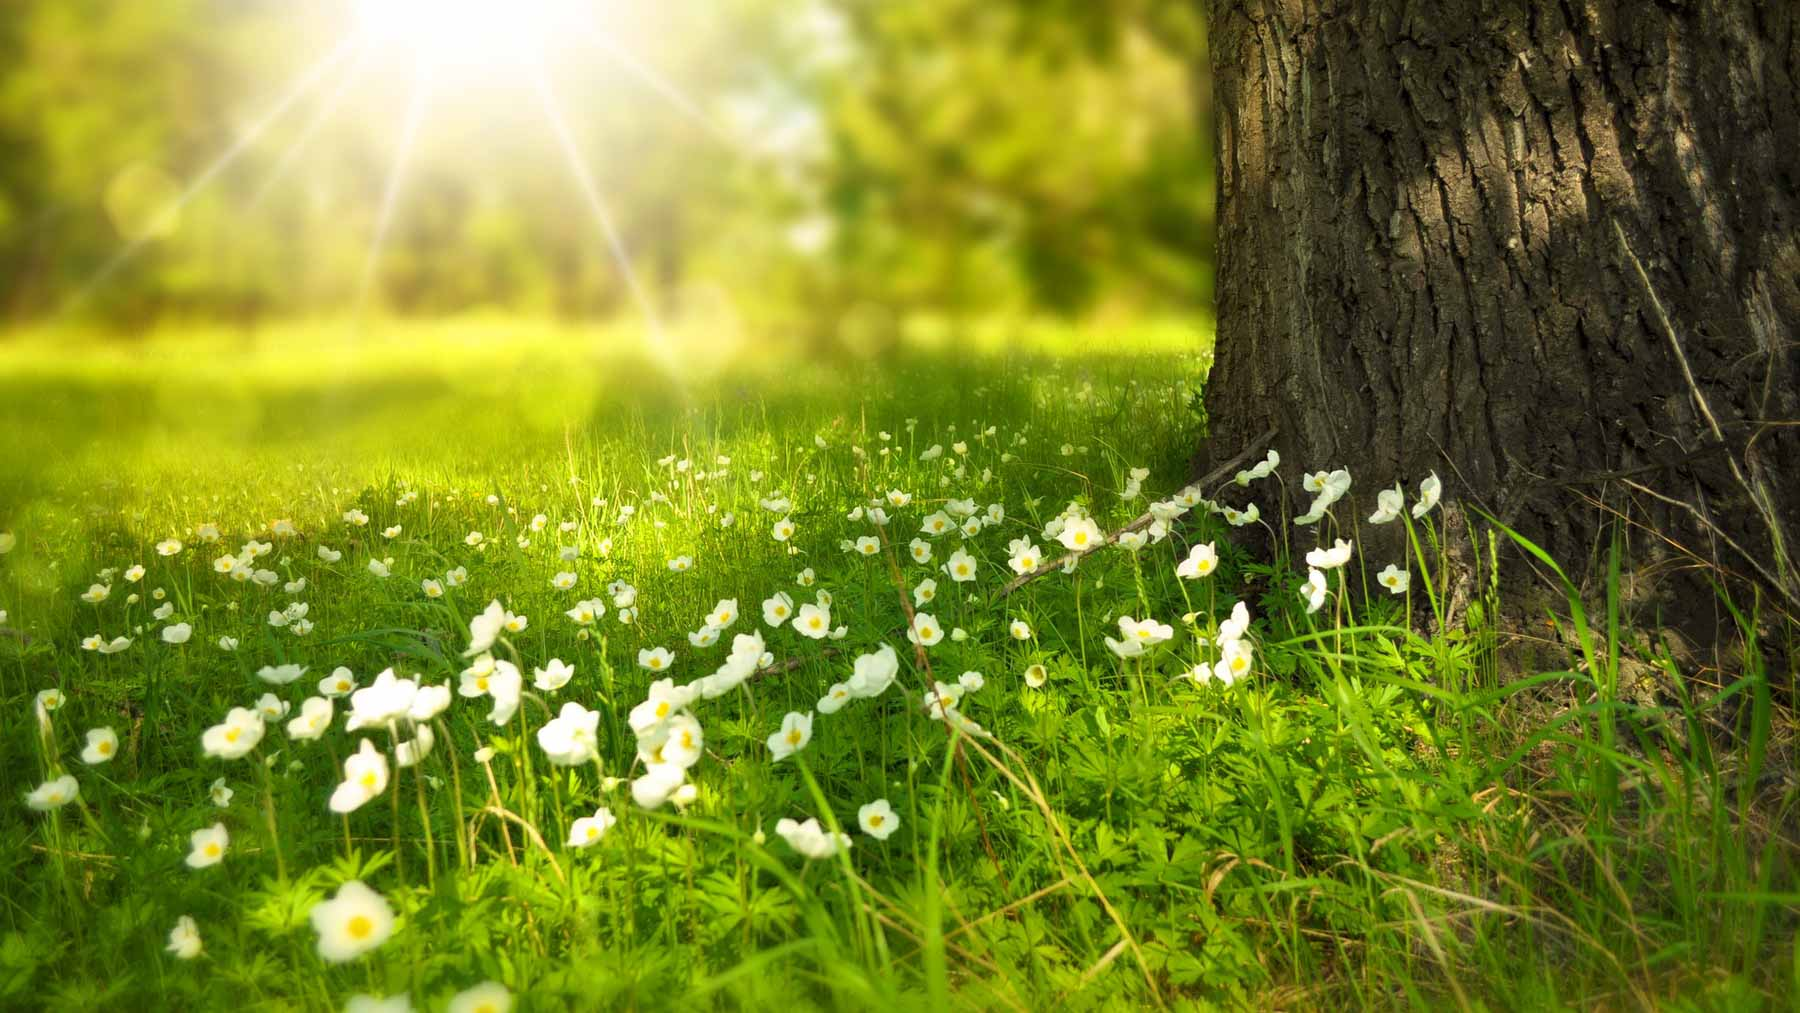 sunshine over daisies at the foot of a tree showing the importance of positive beliefs about life without alcohol